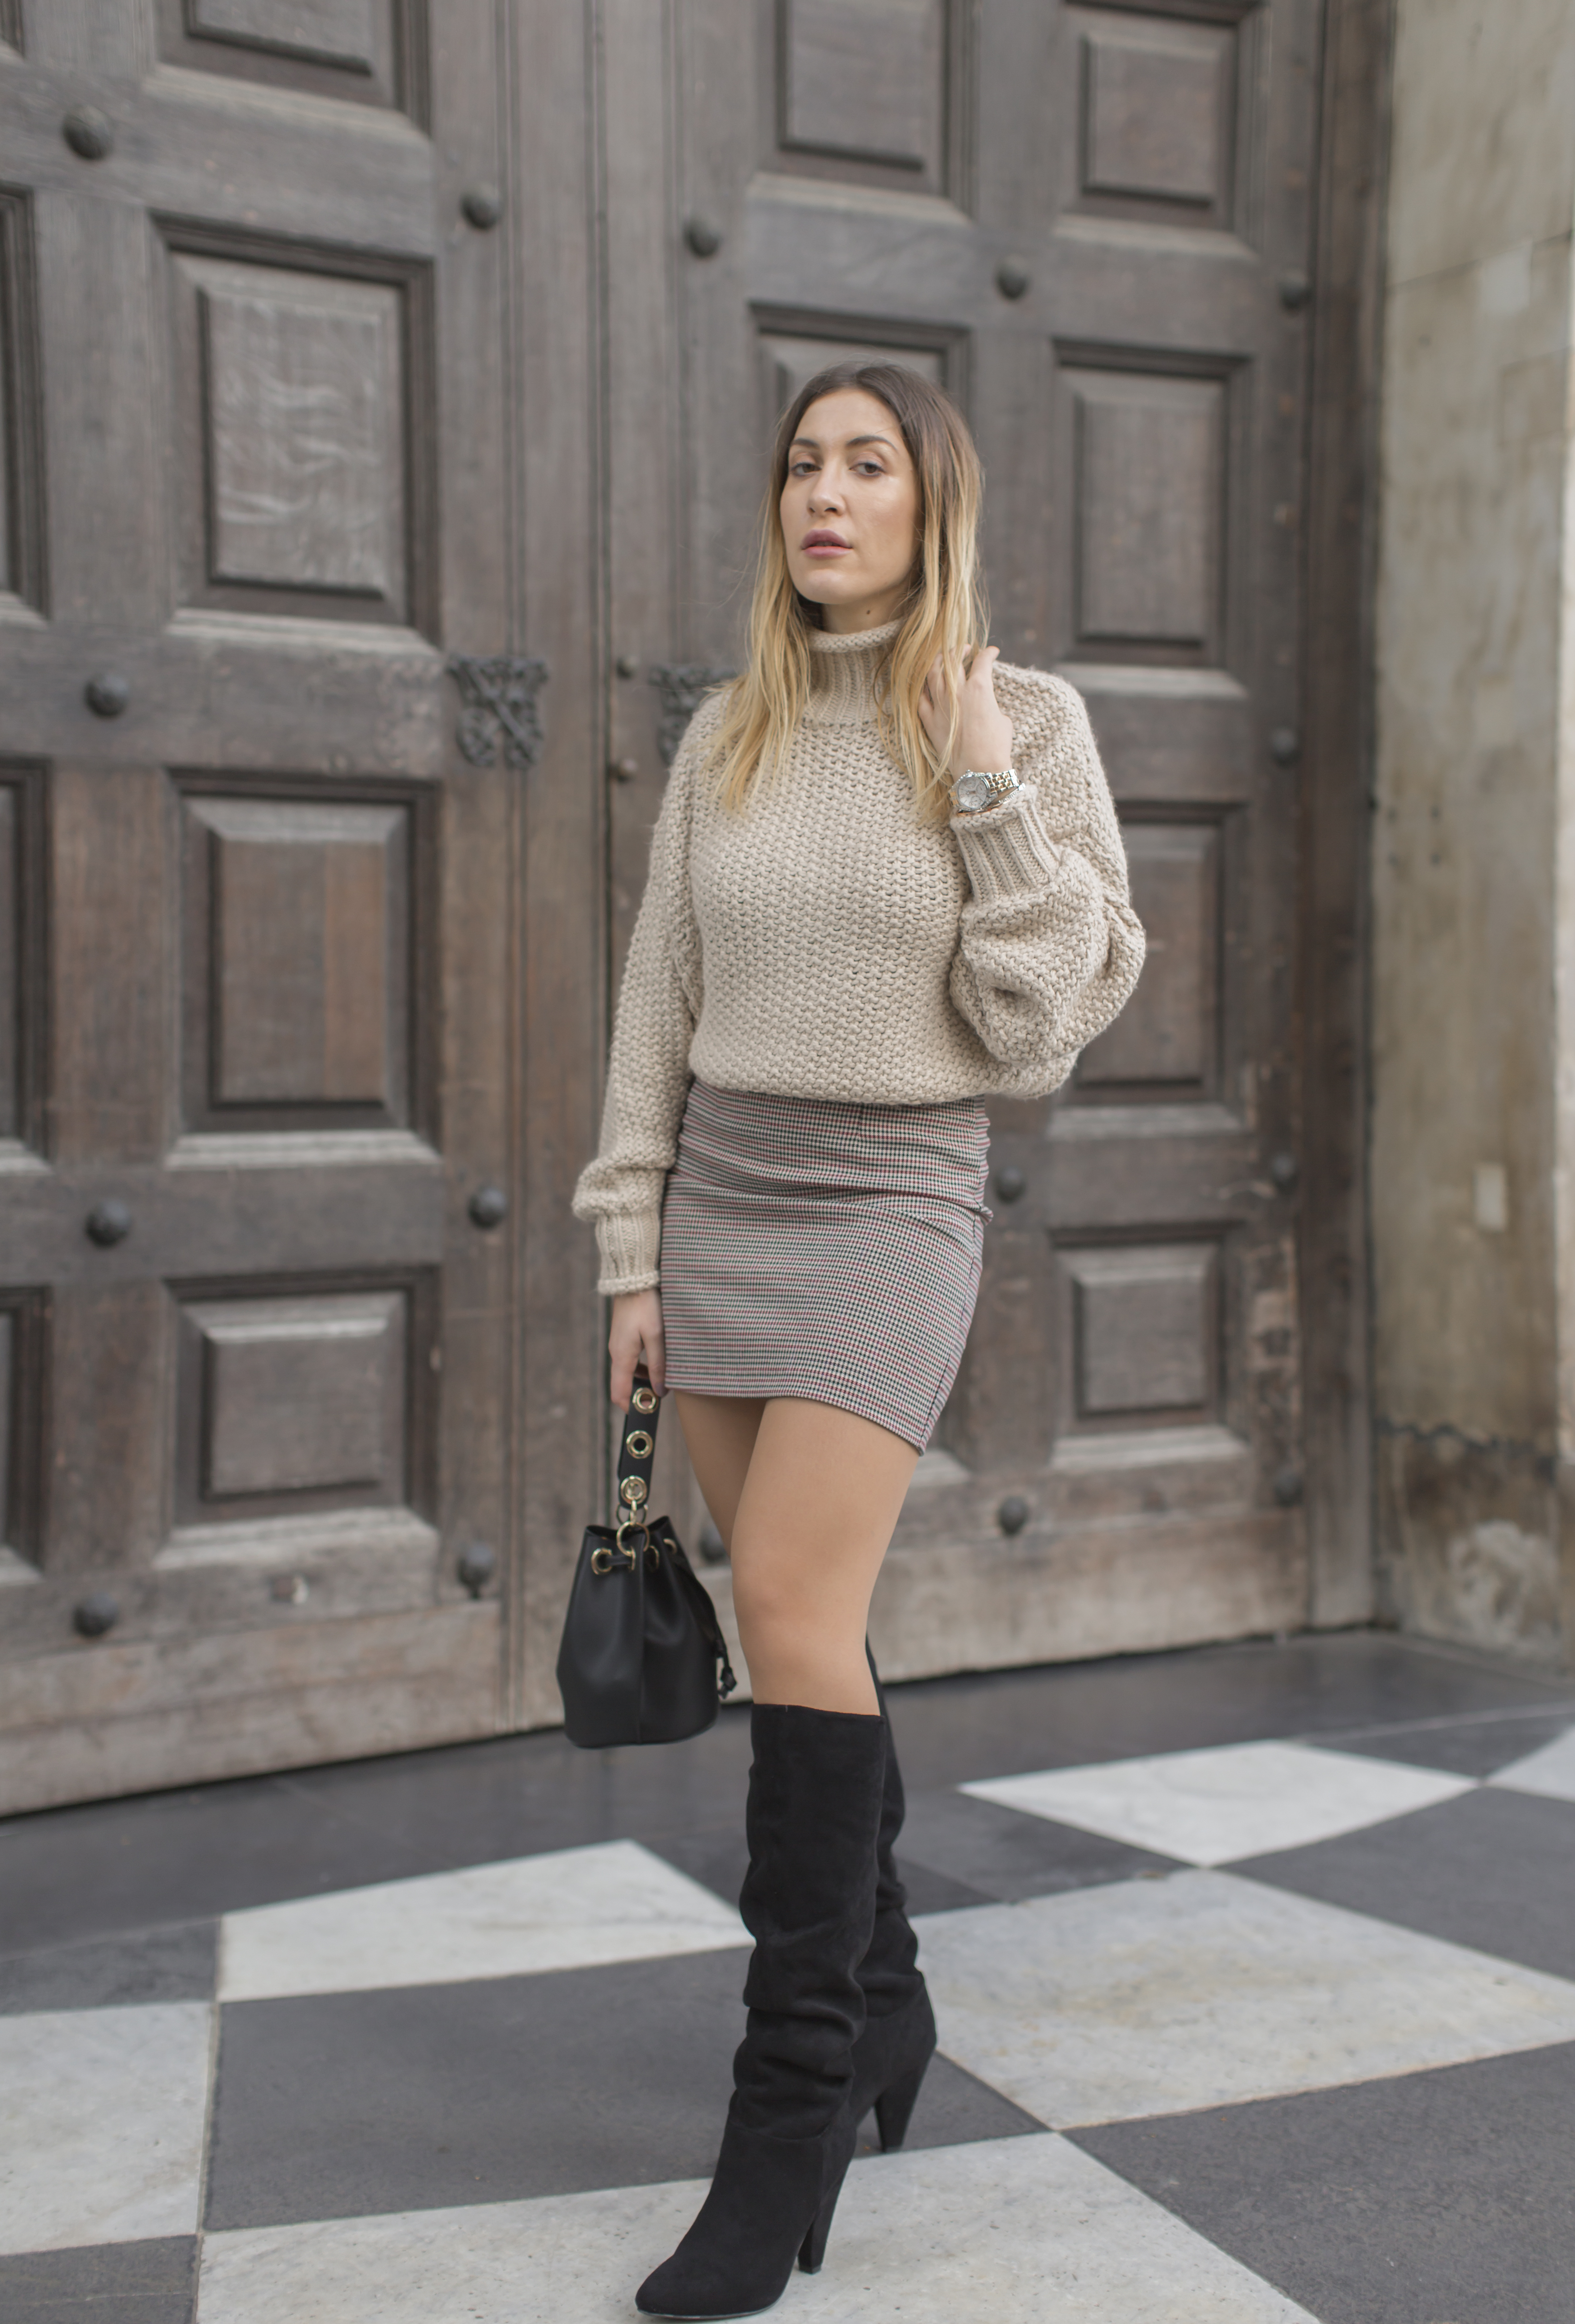 How to Style Slouchy Knee High Boots